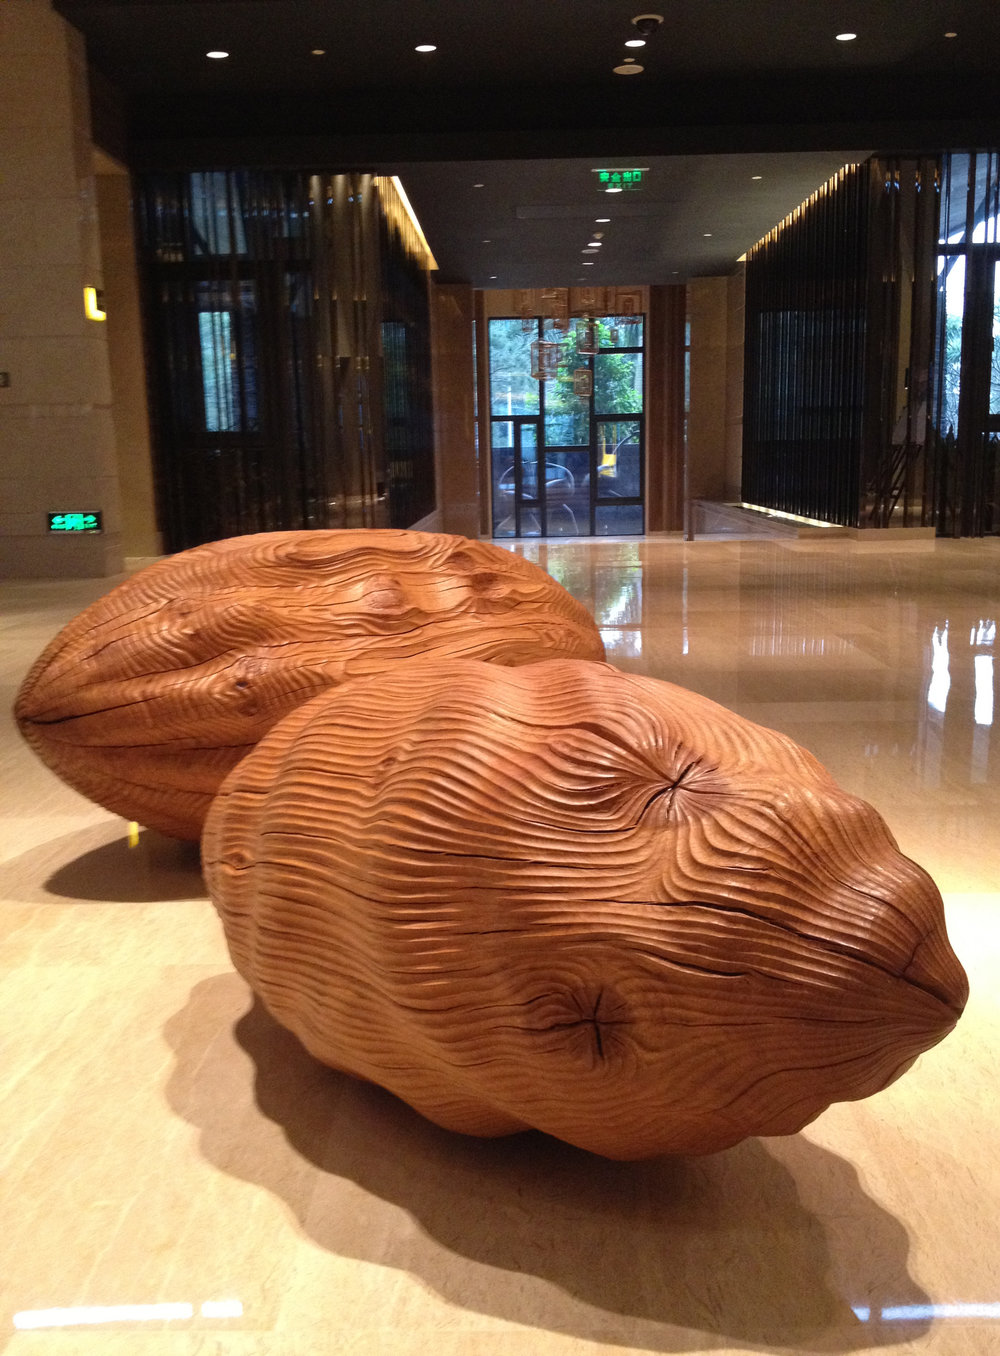 Mapping and Pod I (2012) . The Sheraton Resort Hotel, Guangzhou, China